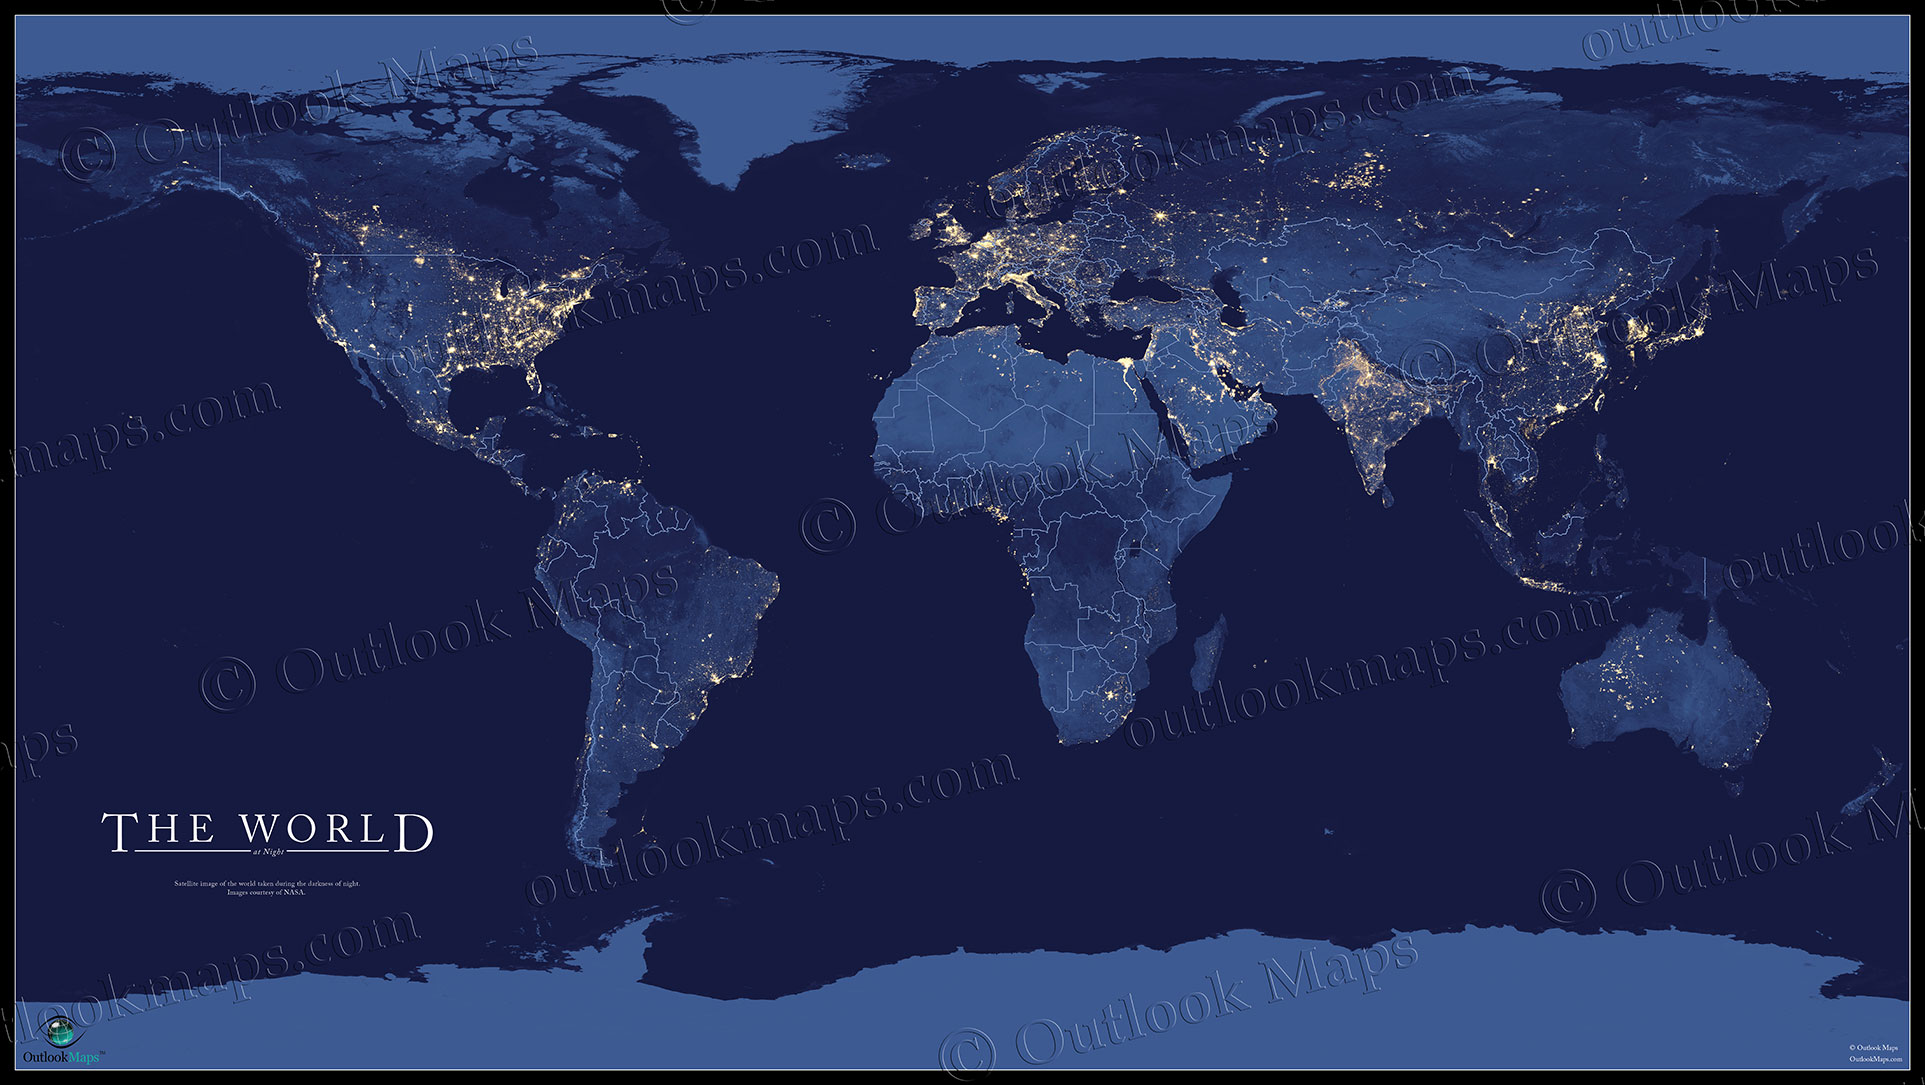 World map at night nasa satellite view of city lights world wall map at darkness showing city lights at night gumiabroncs